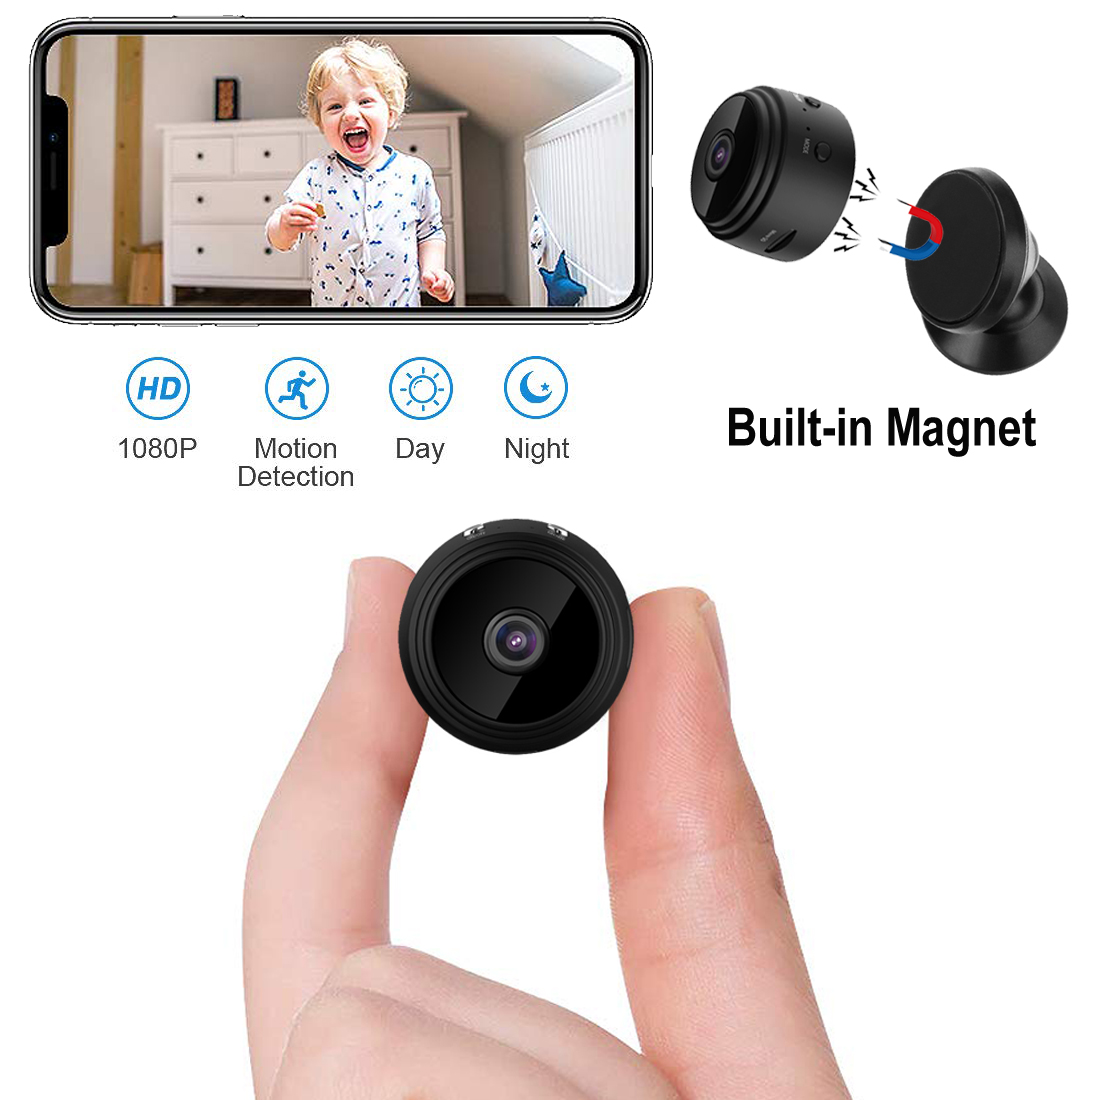 Mini Spy Camera Hd 1080p Wifi Hidden Security Cam With Magnetic Rotation Mount Ebay